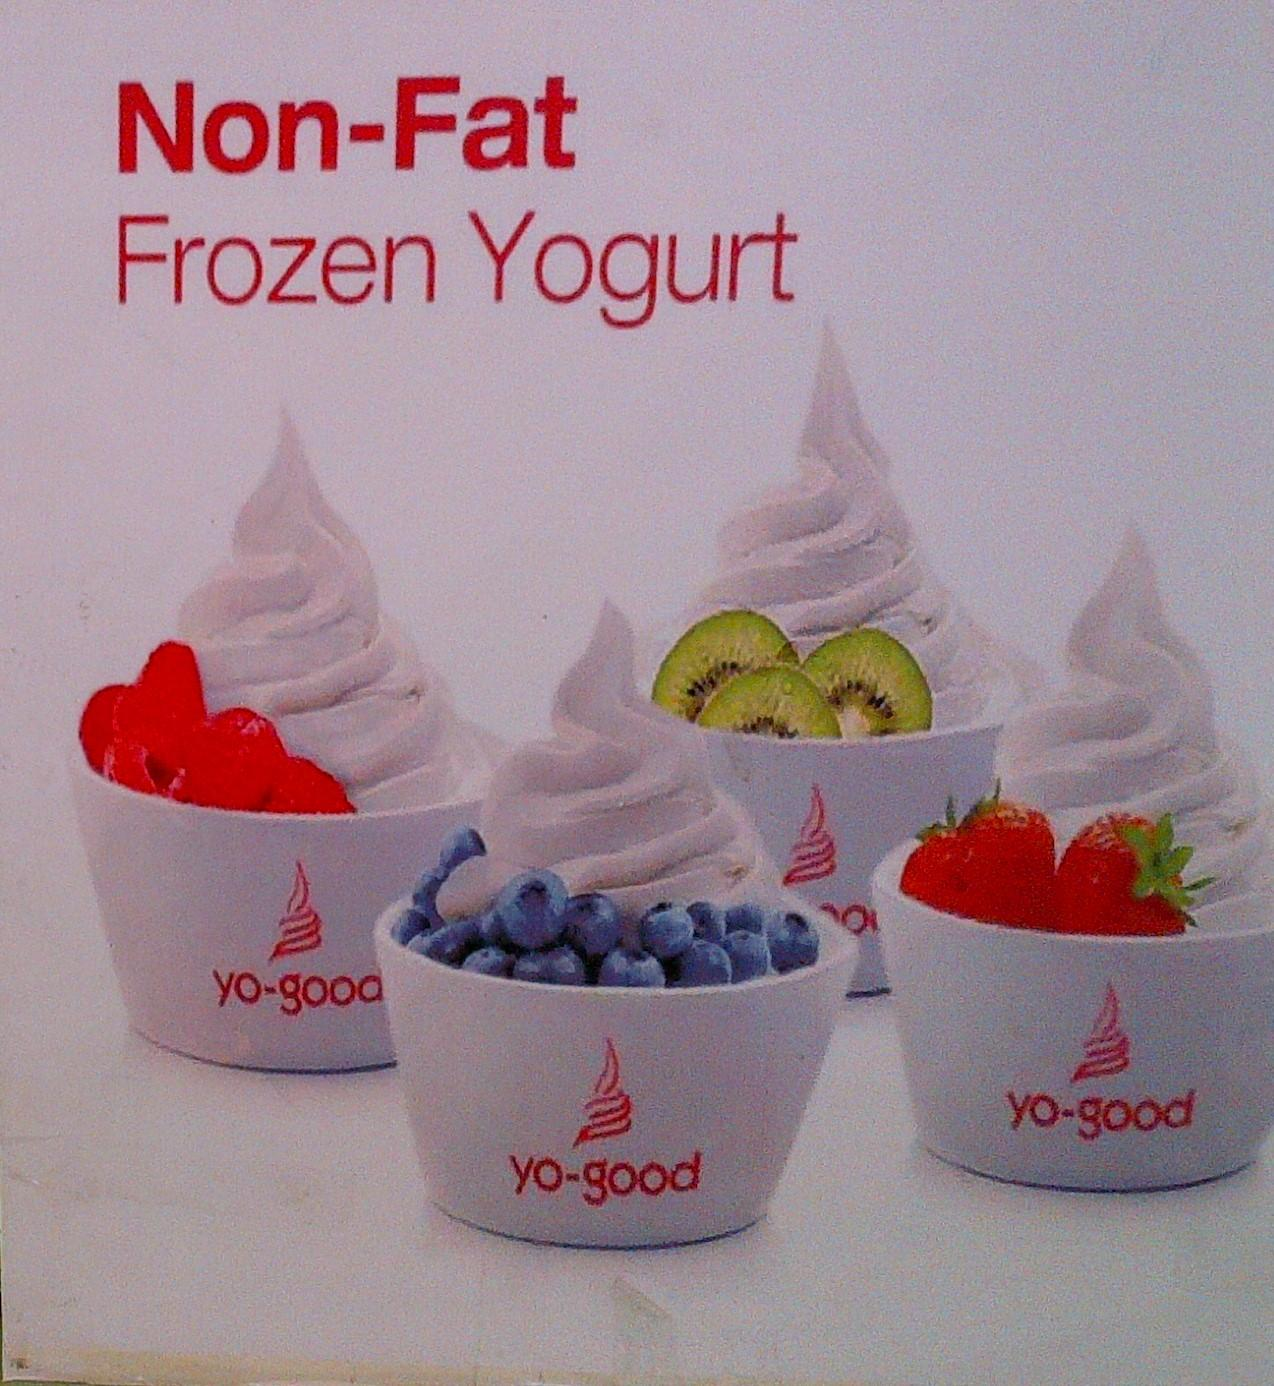 the best yogurt in the united View the best rated restaurants in united states dinecom has real restaurant reviews and ratings by users for united states yogurt restaurants.